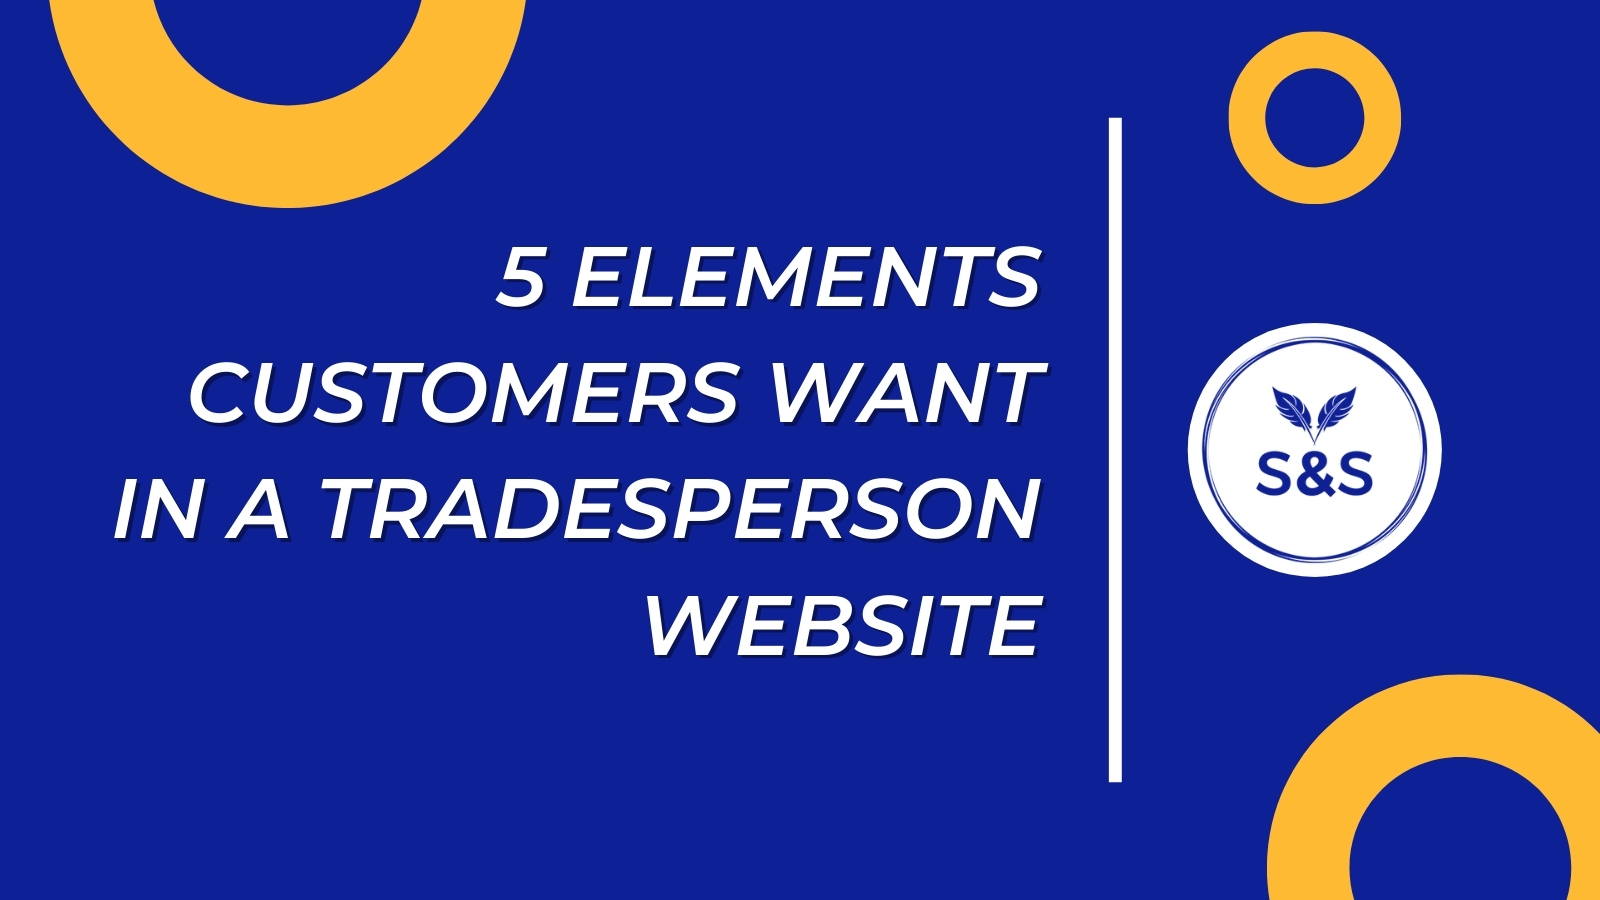 5 elements customers want in a tradesperson website header